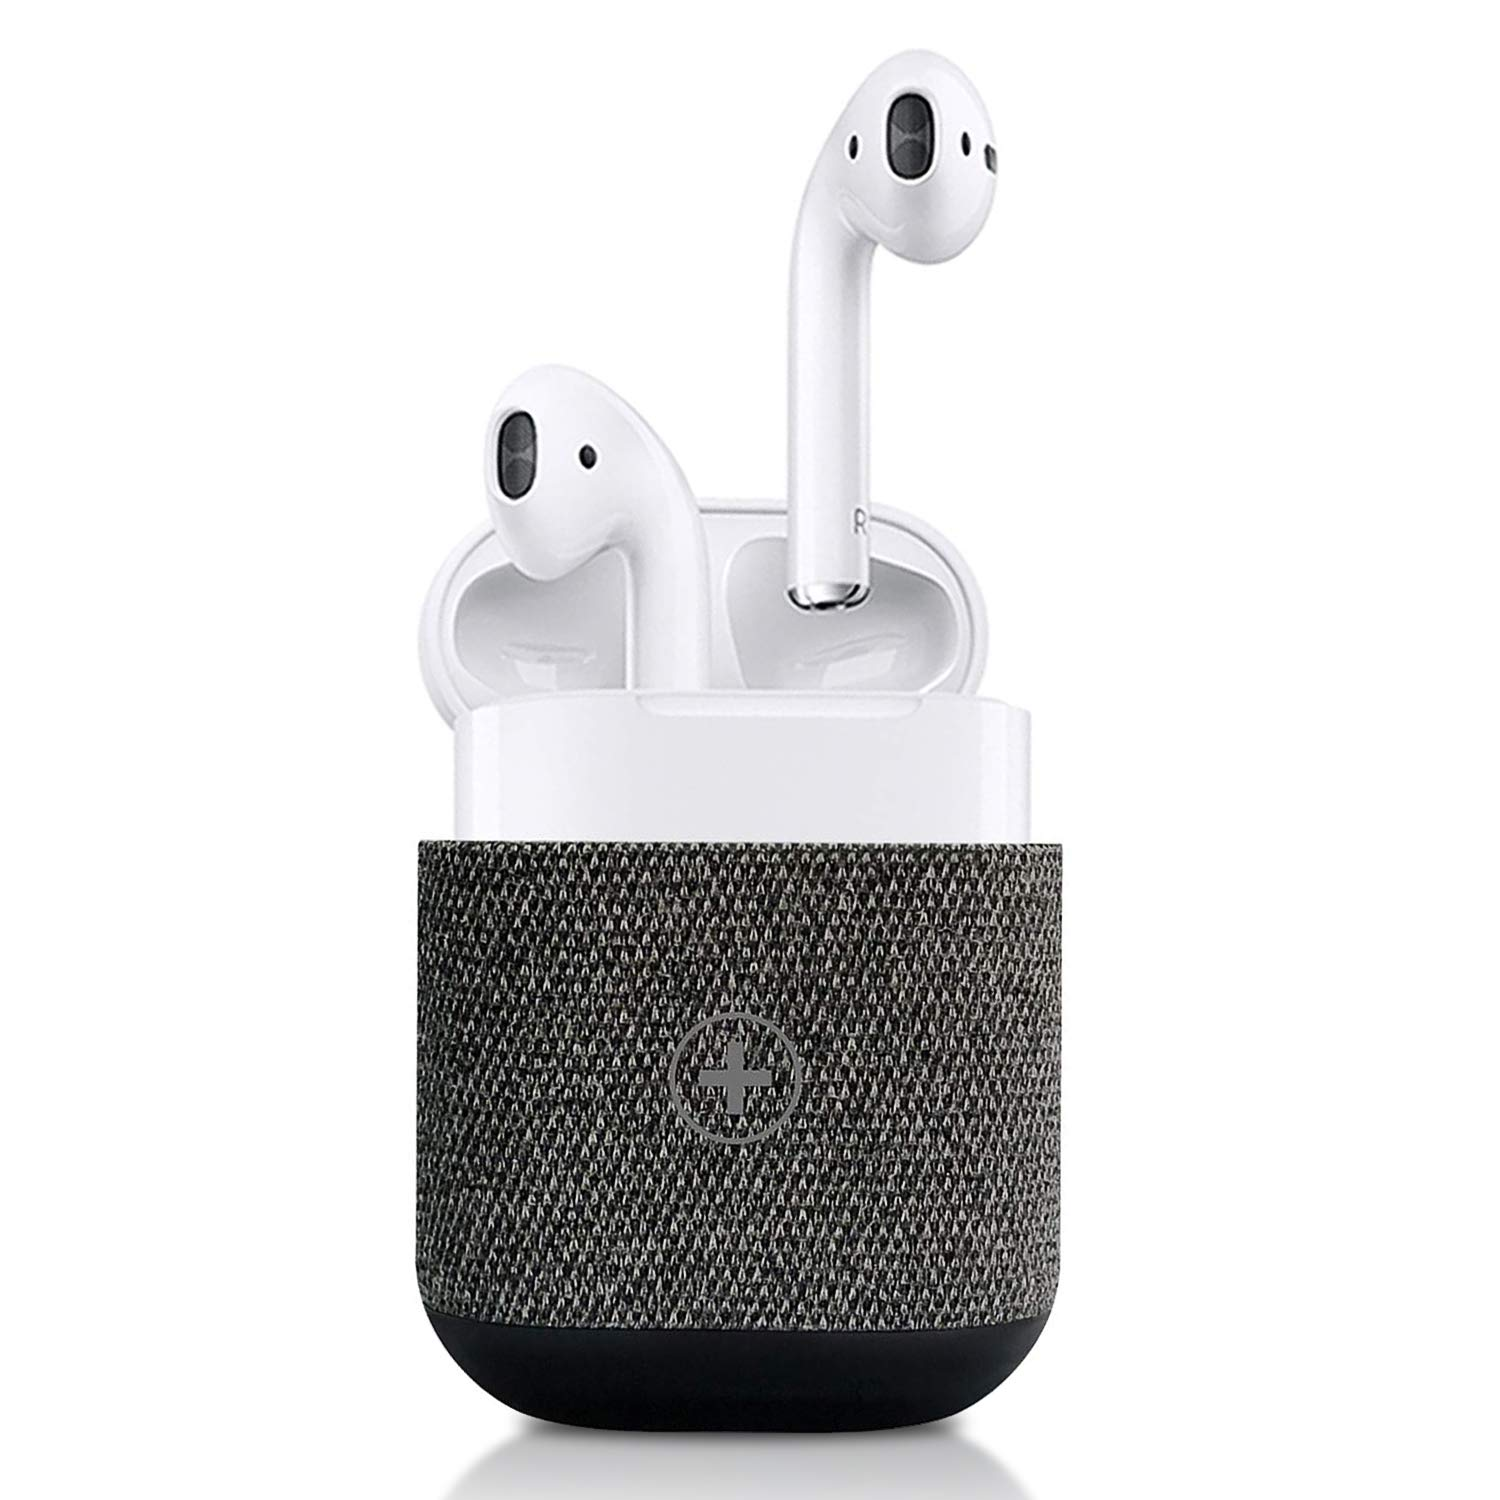 Wireless Charging Case for Apple Airpods Accessories Protective Cover Compatible Qi Standard Wireless Charger